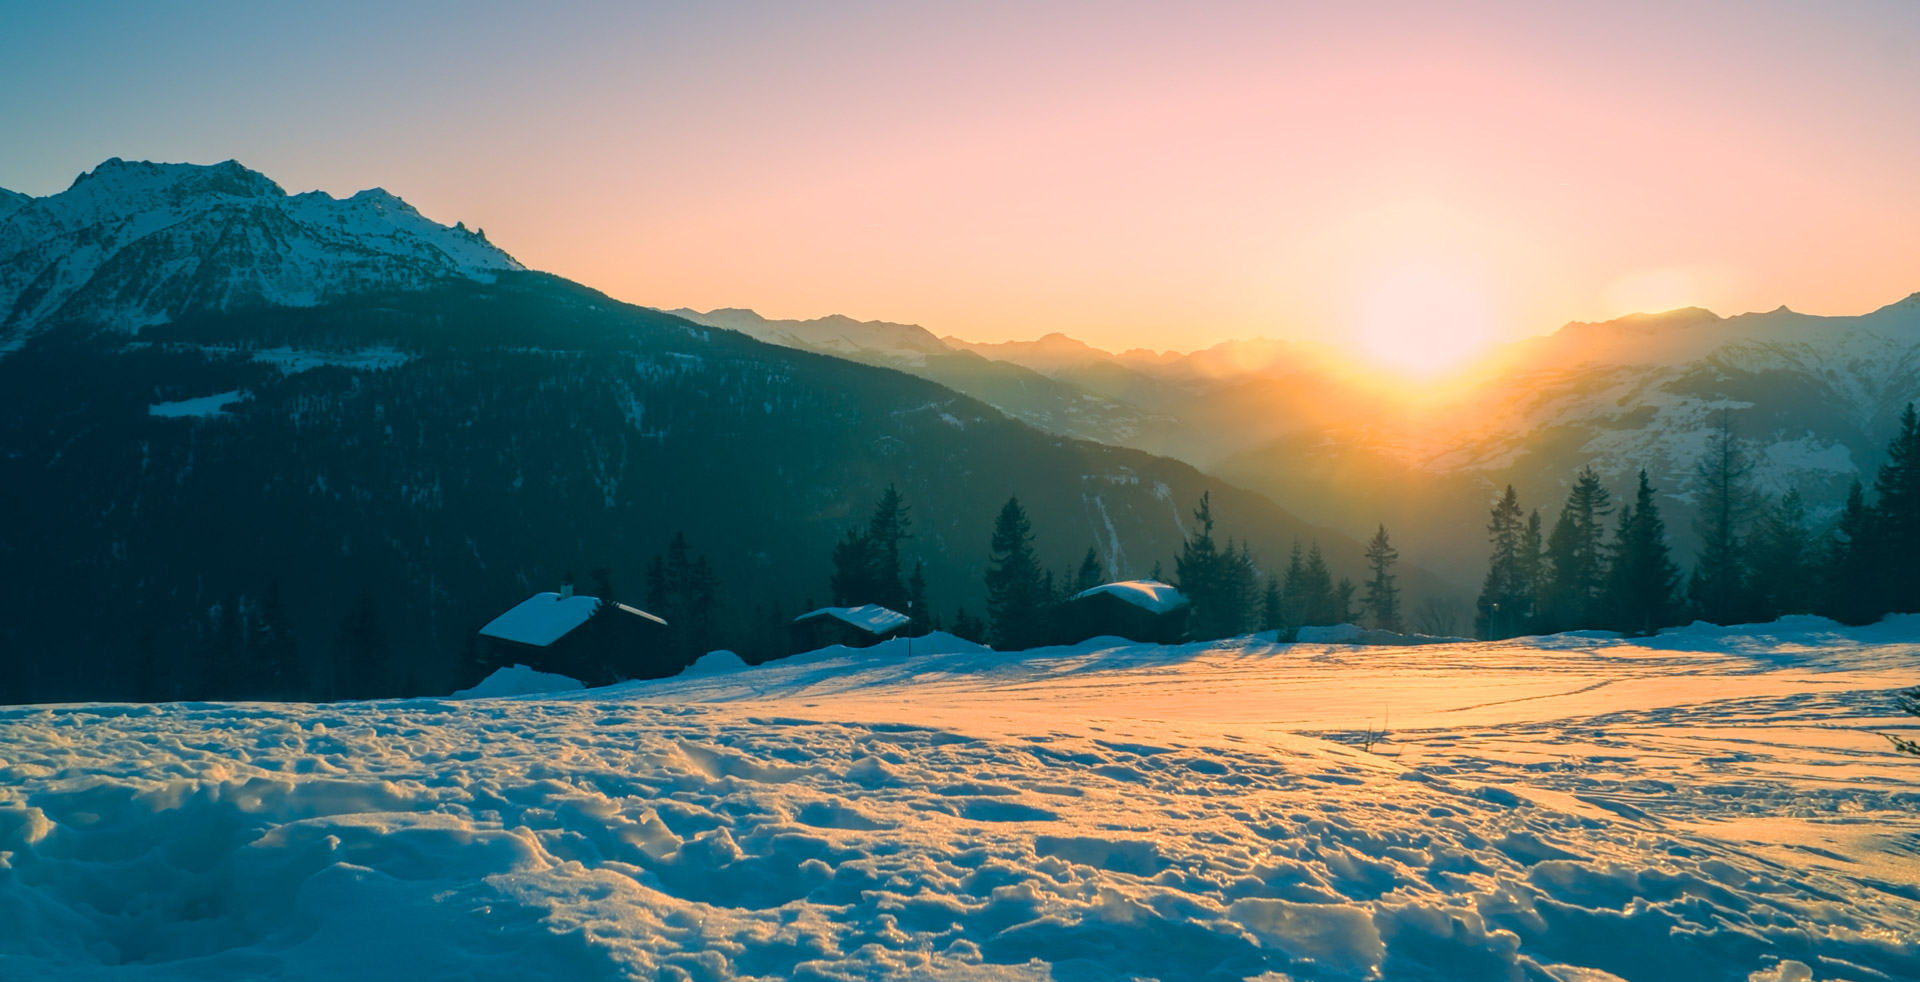 The sun setting over the mountains and snowfields of La Rosiere, tinting the sky pink and the ground yellow